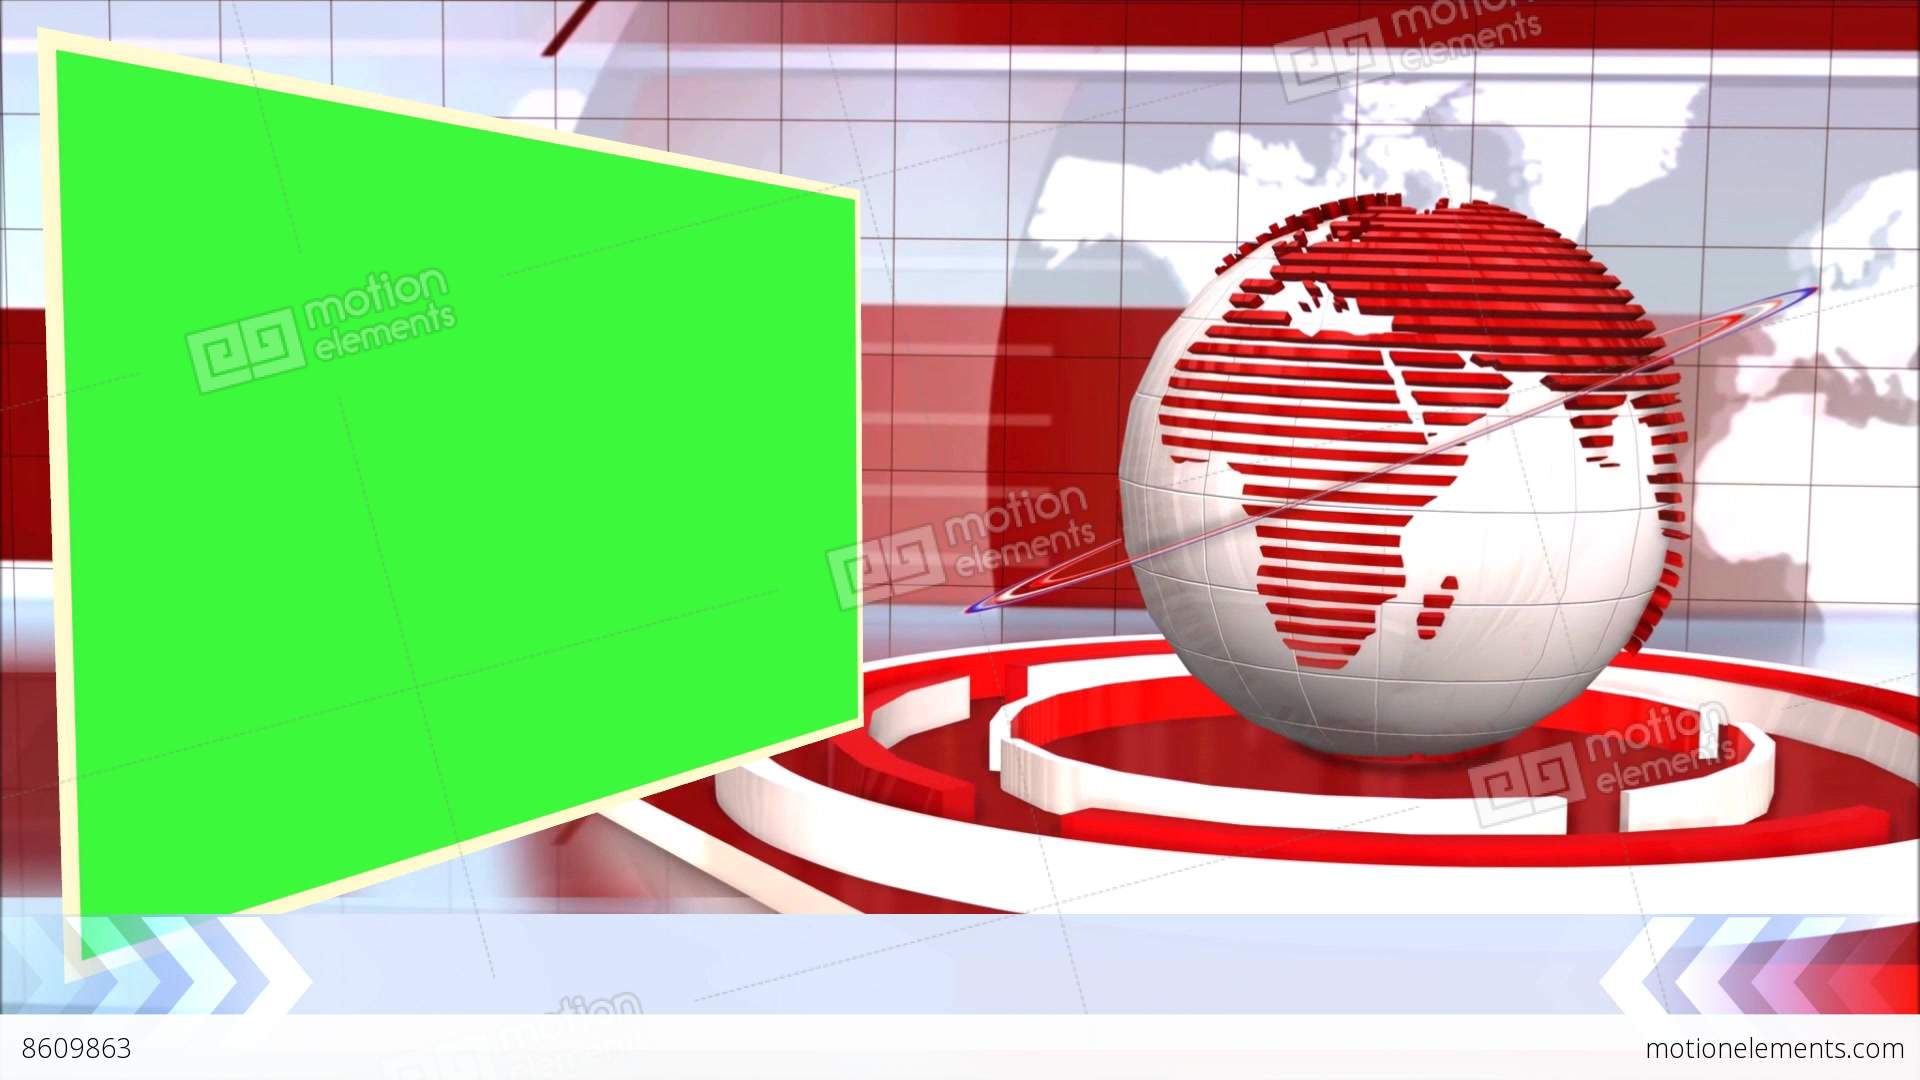 News Broadcast Background World Animation Green Screen Stock Video Footage